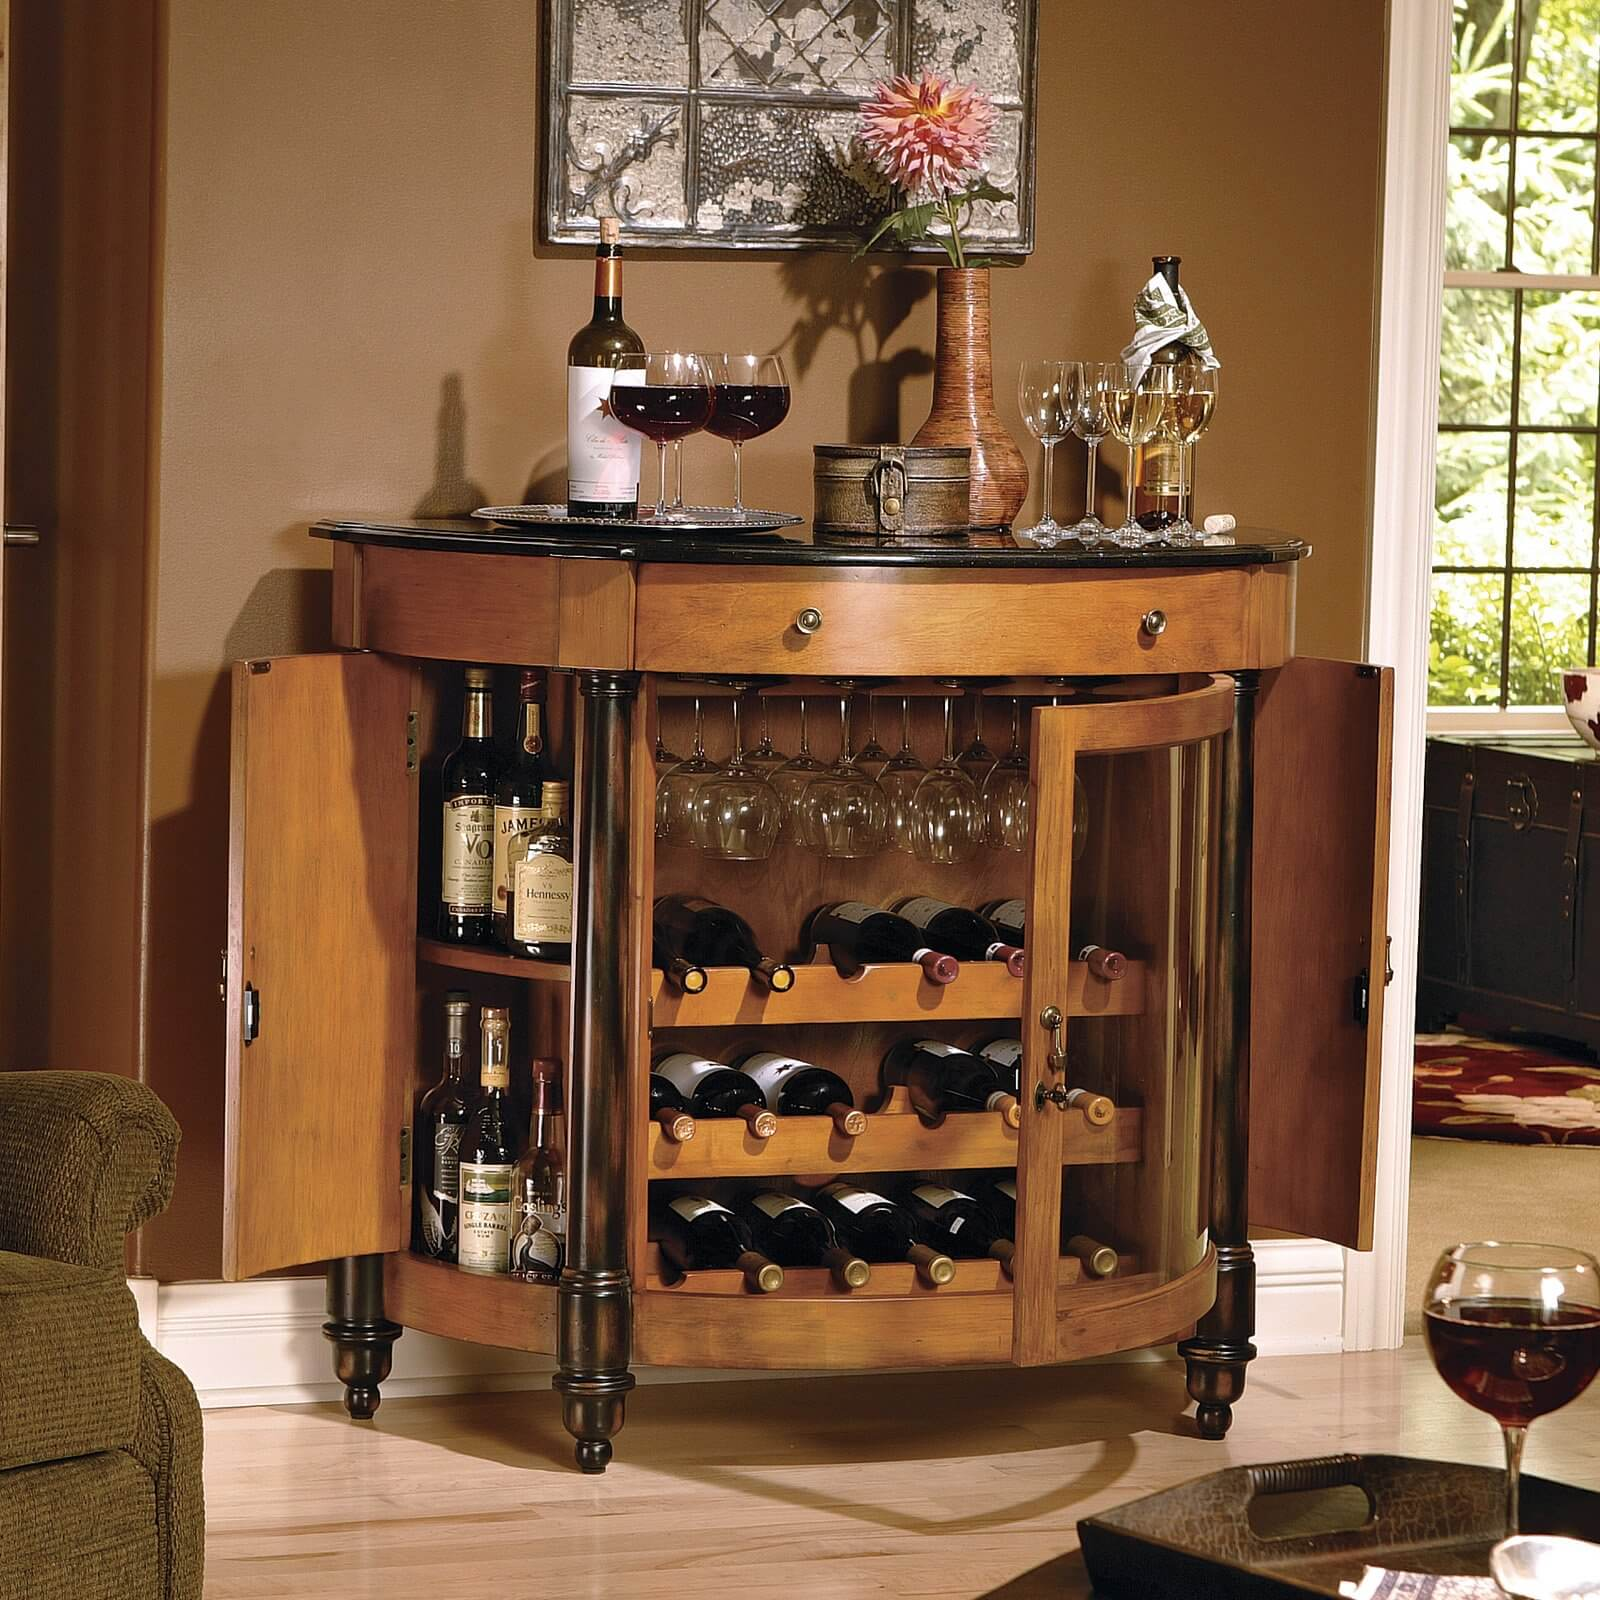 Marvelous Hereu0027s A Home Bar For Wine Lovers With Itu0027s 18 Bottle Wine Rack.